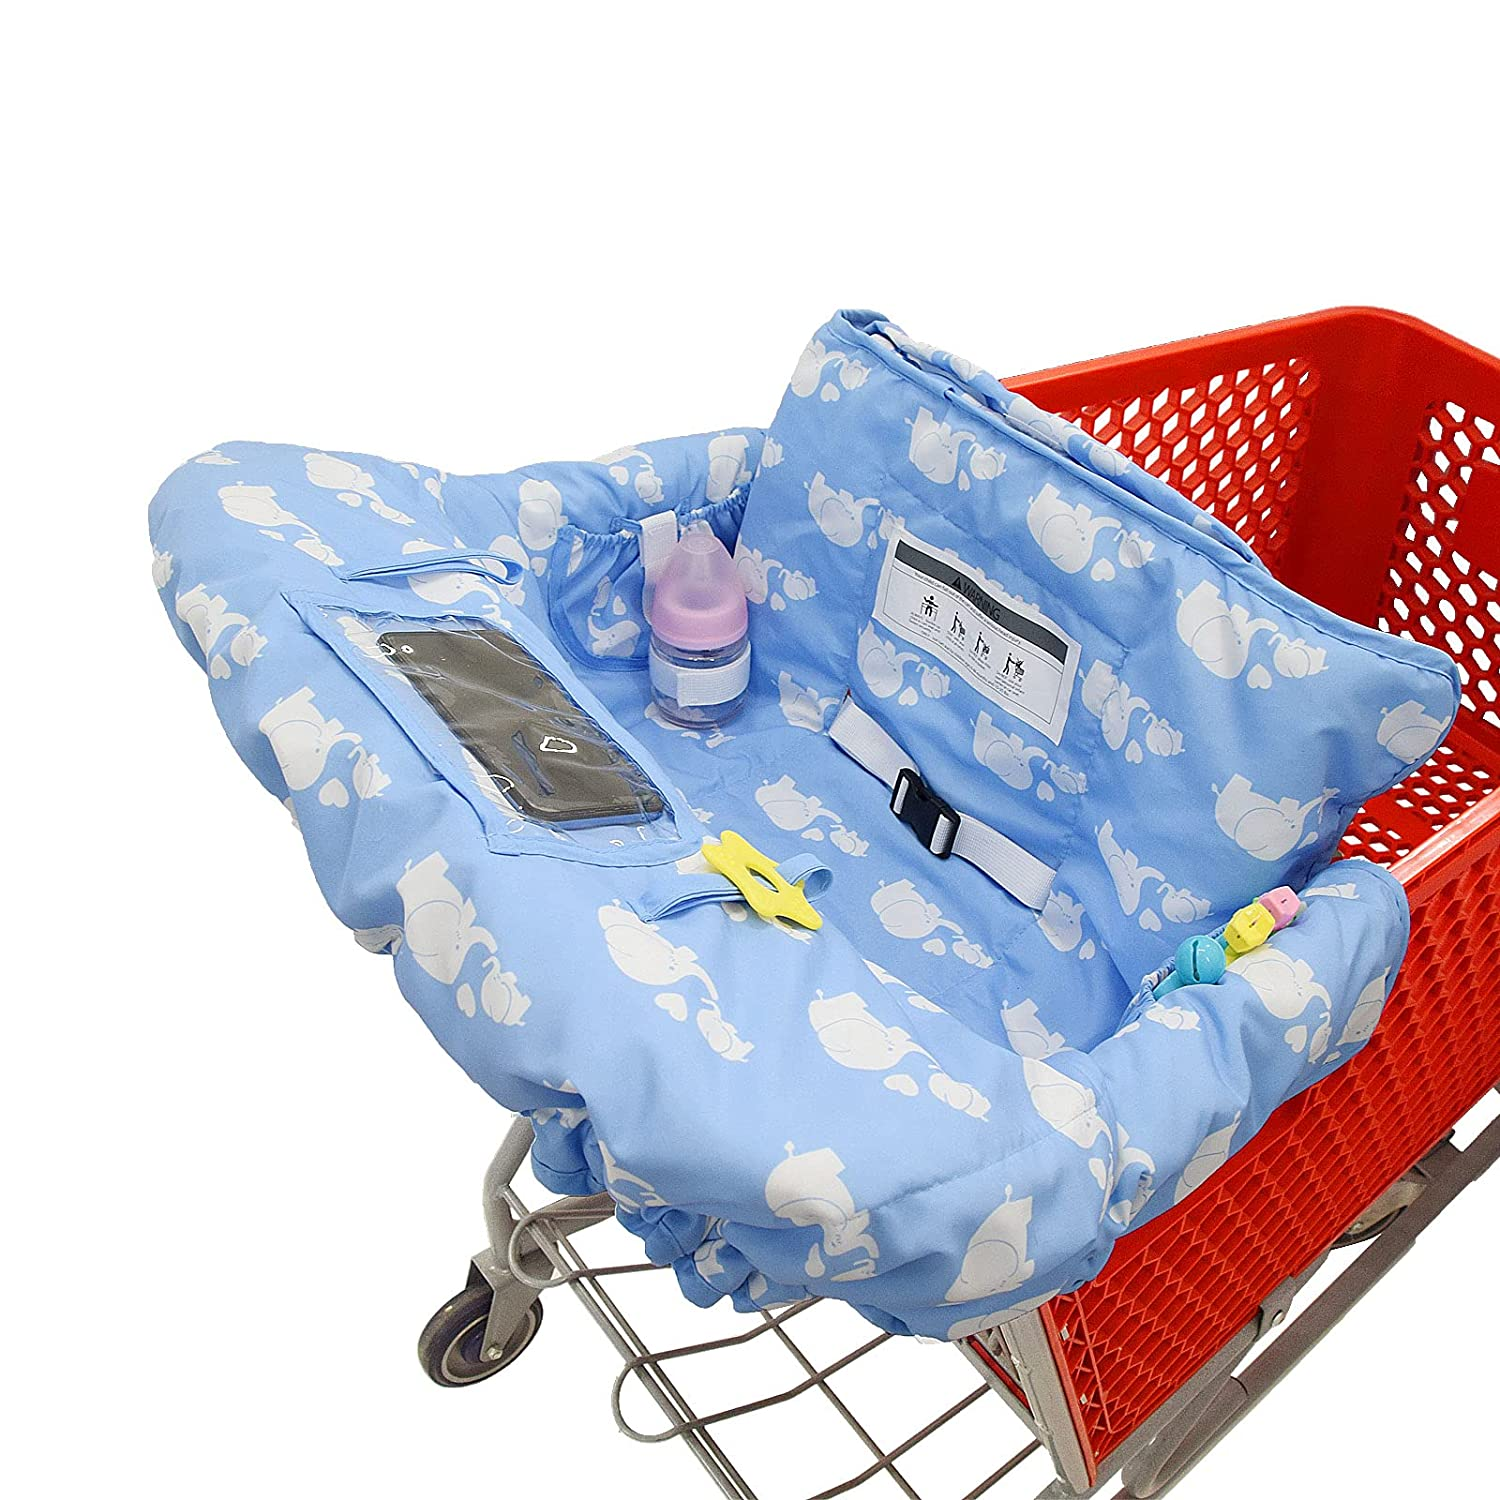 Miss Dong&Mr. Chen Shopping Cart Cover for Baby or Toddler/2-in-1 High Chair Cover/Machine Washable/Fits Restaurant Highchair/Fold'n Roll Style/Portable with Free Carry Bag (Cotton,Blue Baby Elephant)